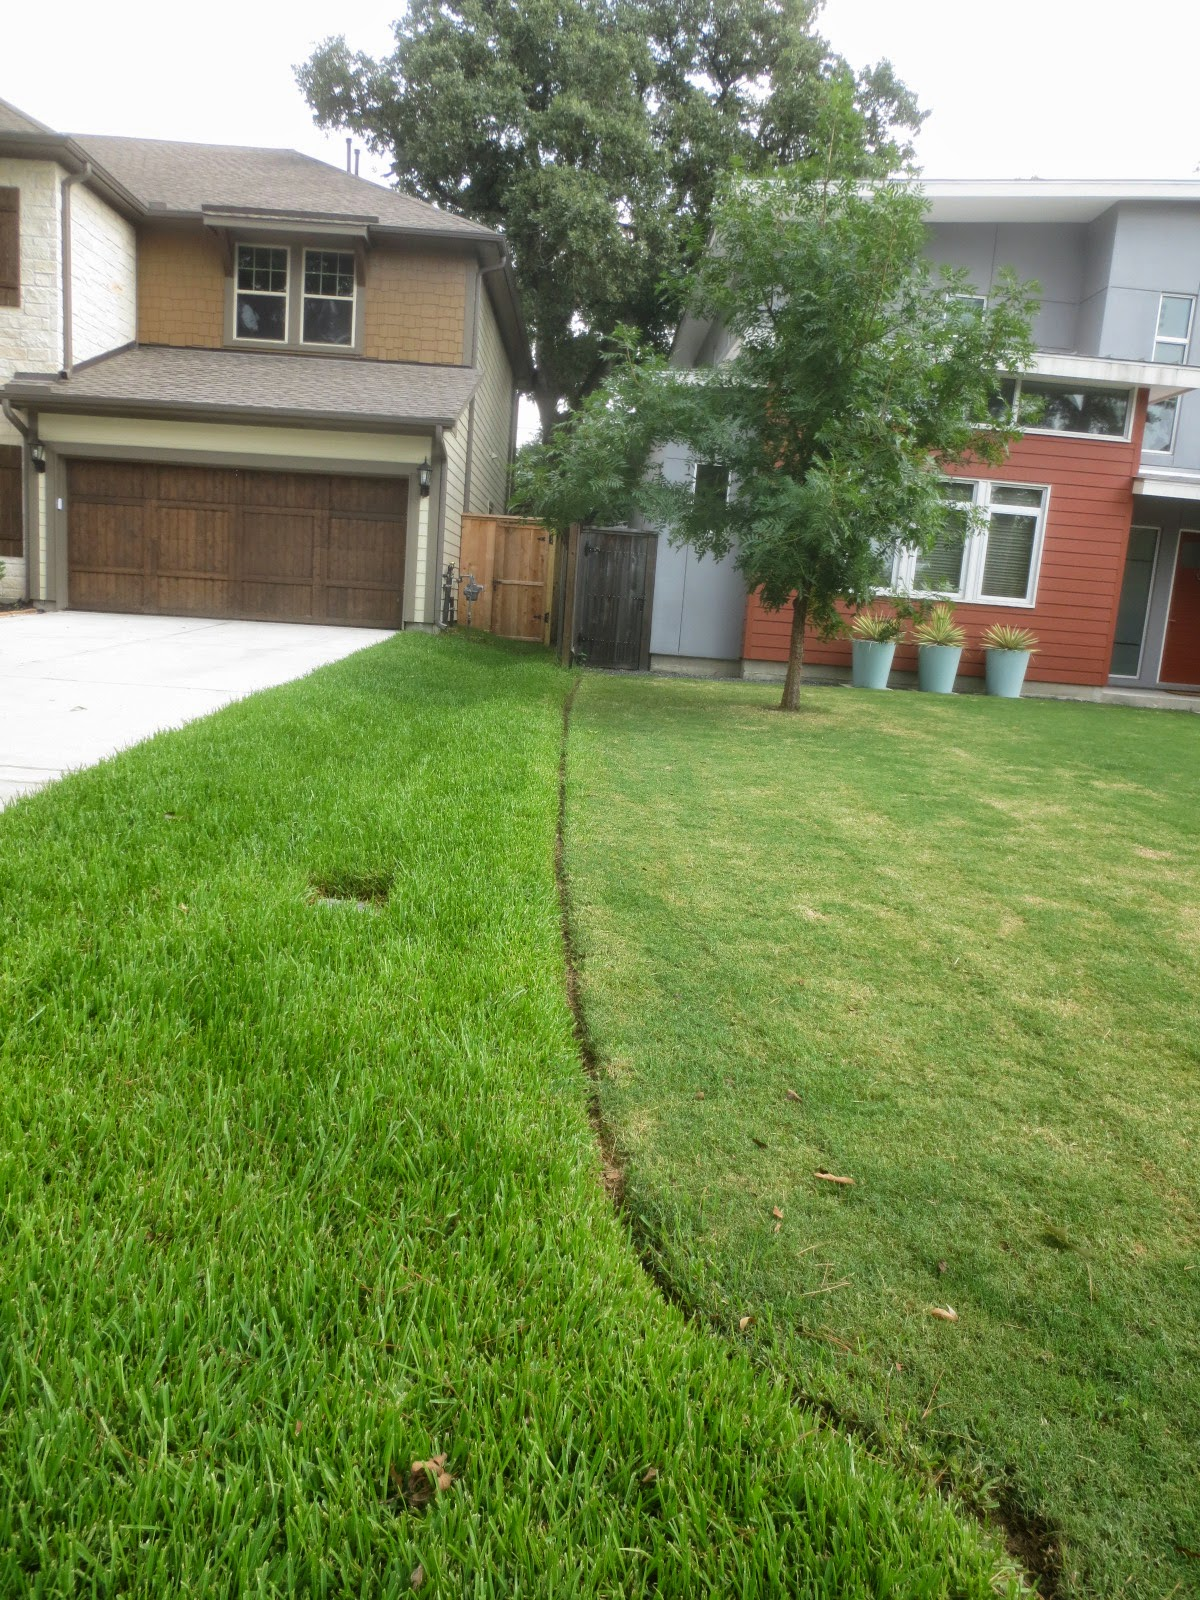 Landscaping With Bermuda Grass : Tropical texana preventing yard wars boundary ideas when